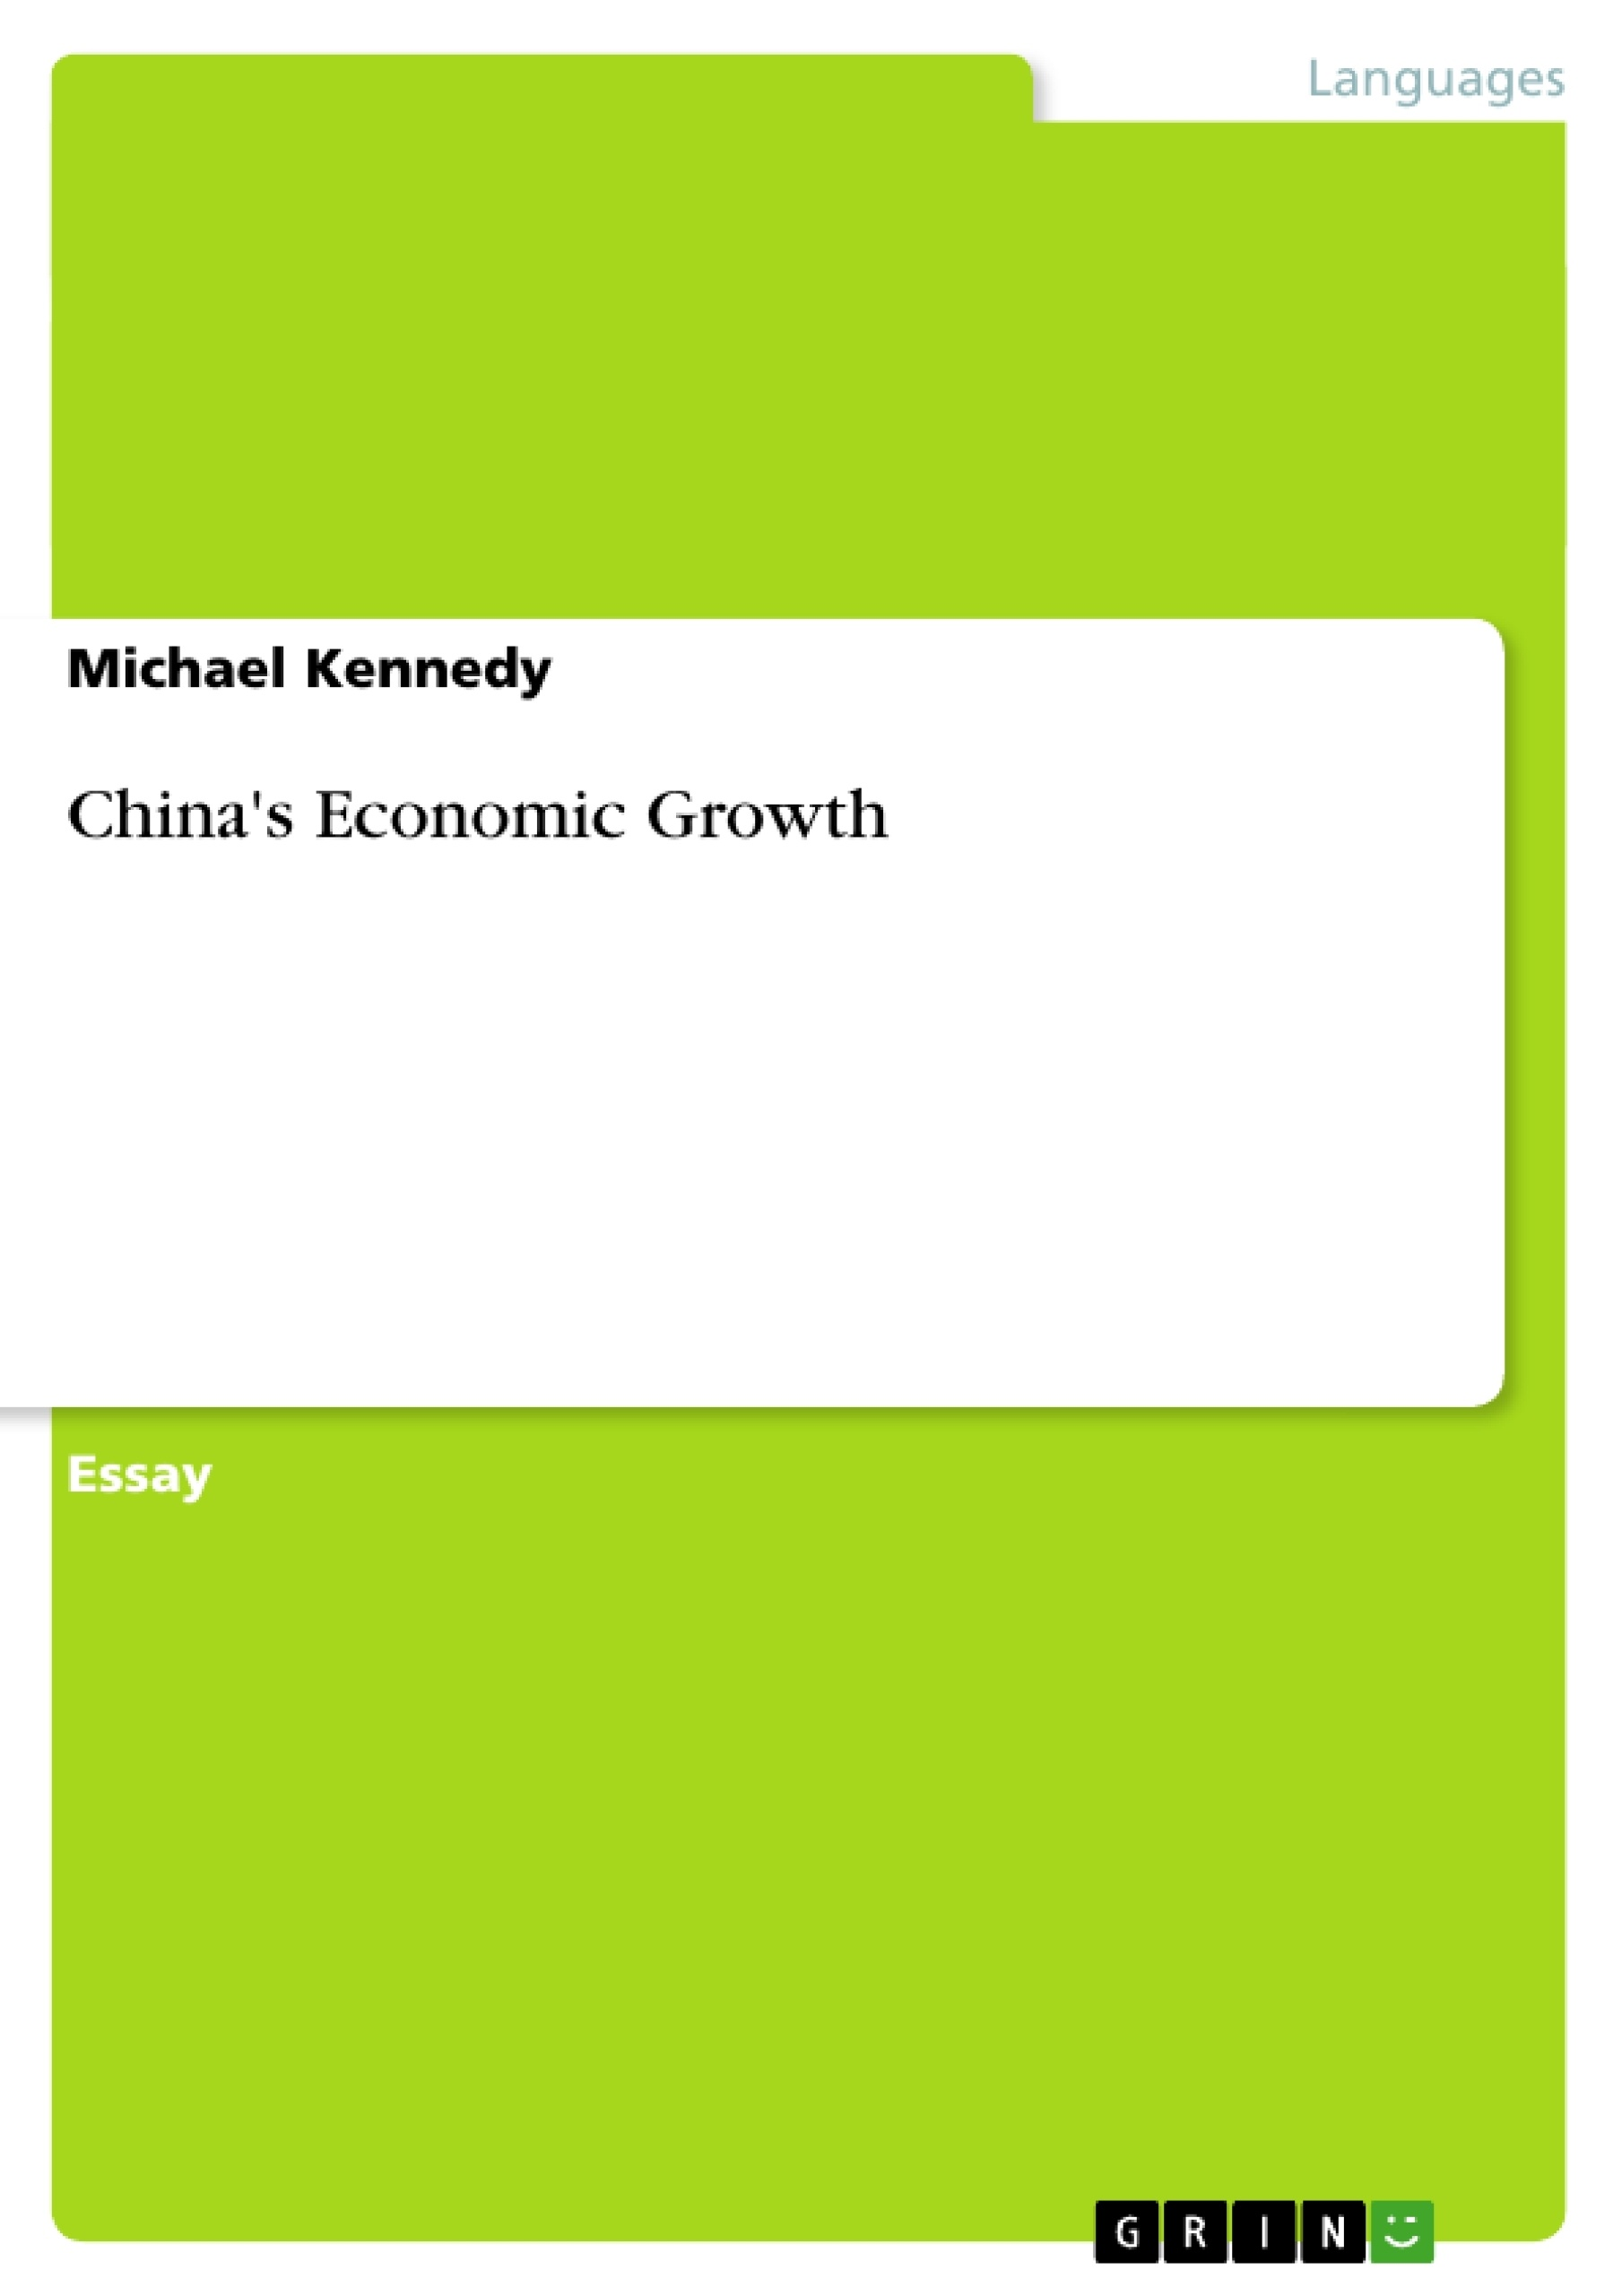 foreign direct investment in developing countries economics essay Economic globalization is one of the three  majority world through foreign direct investment and  growth in developing countries and lowered.